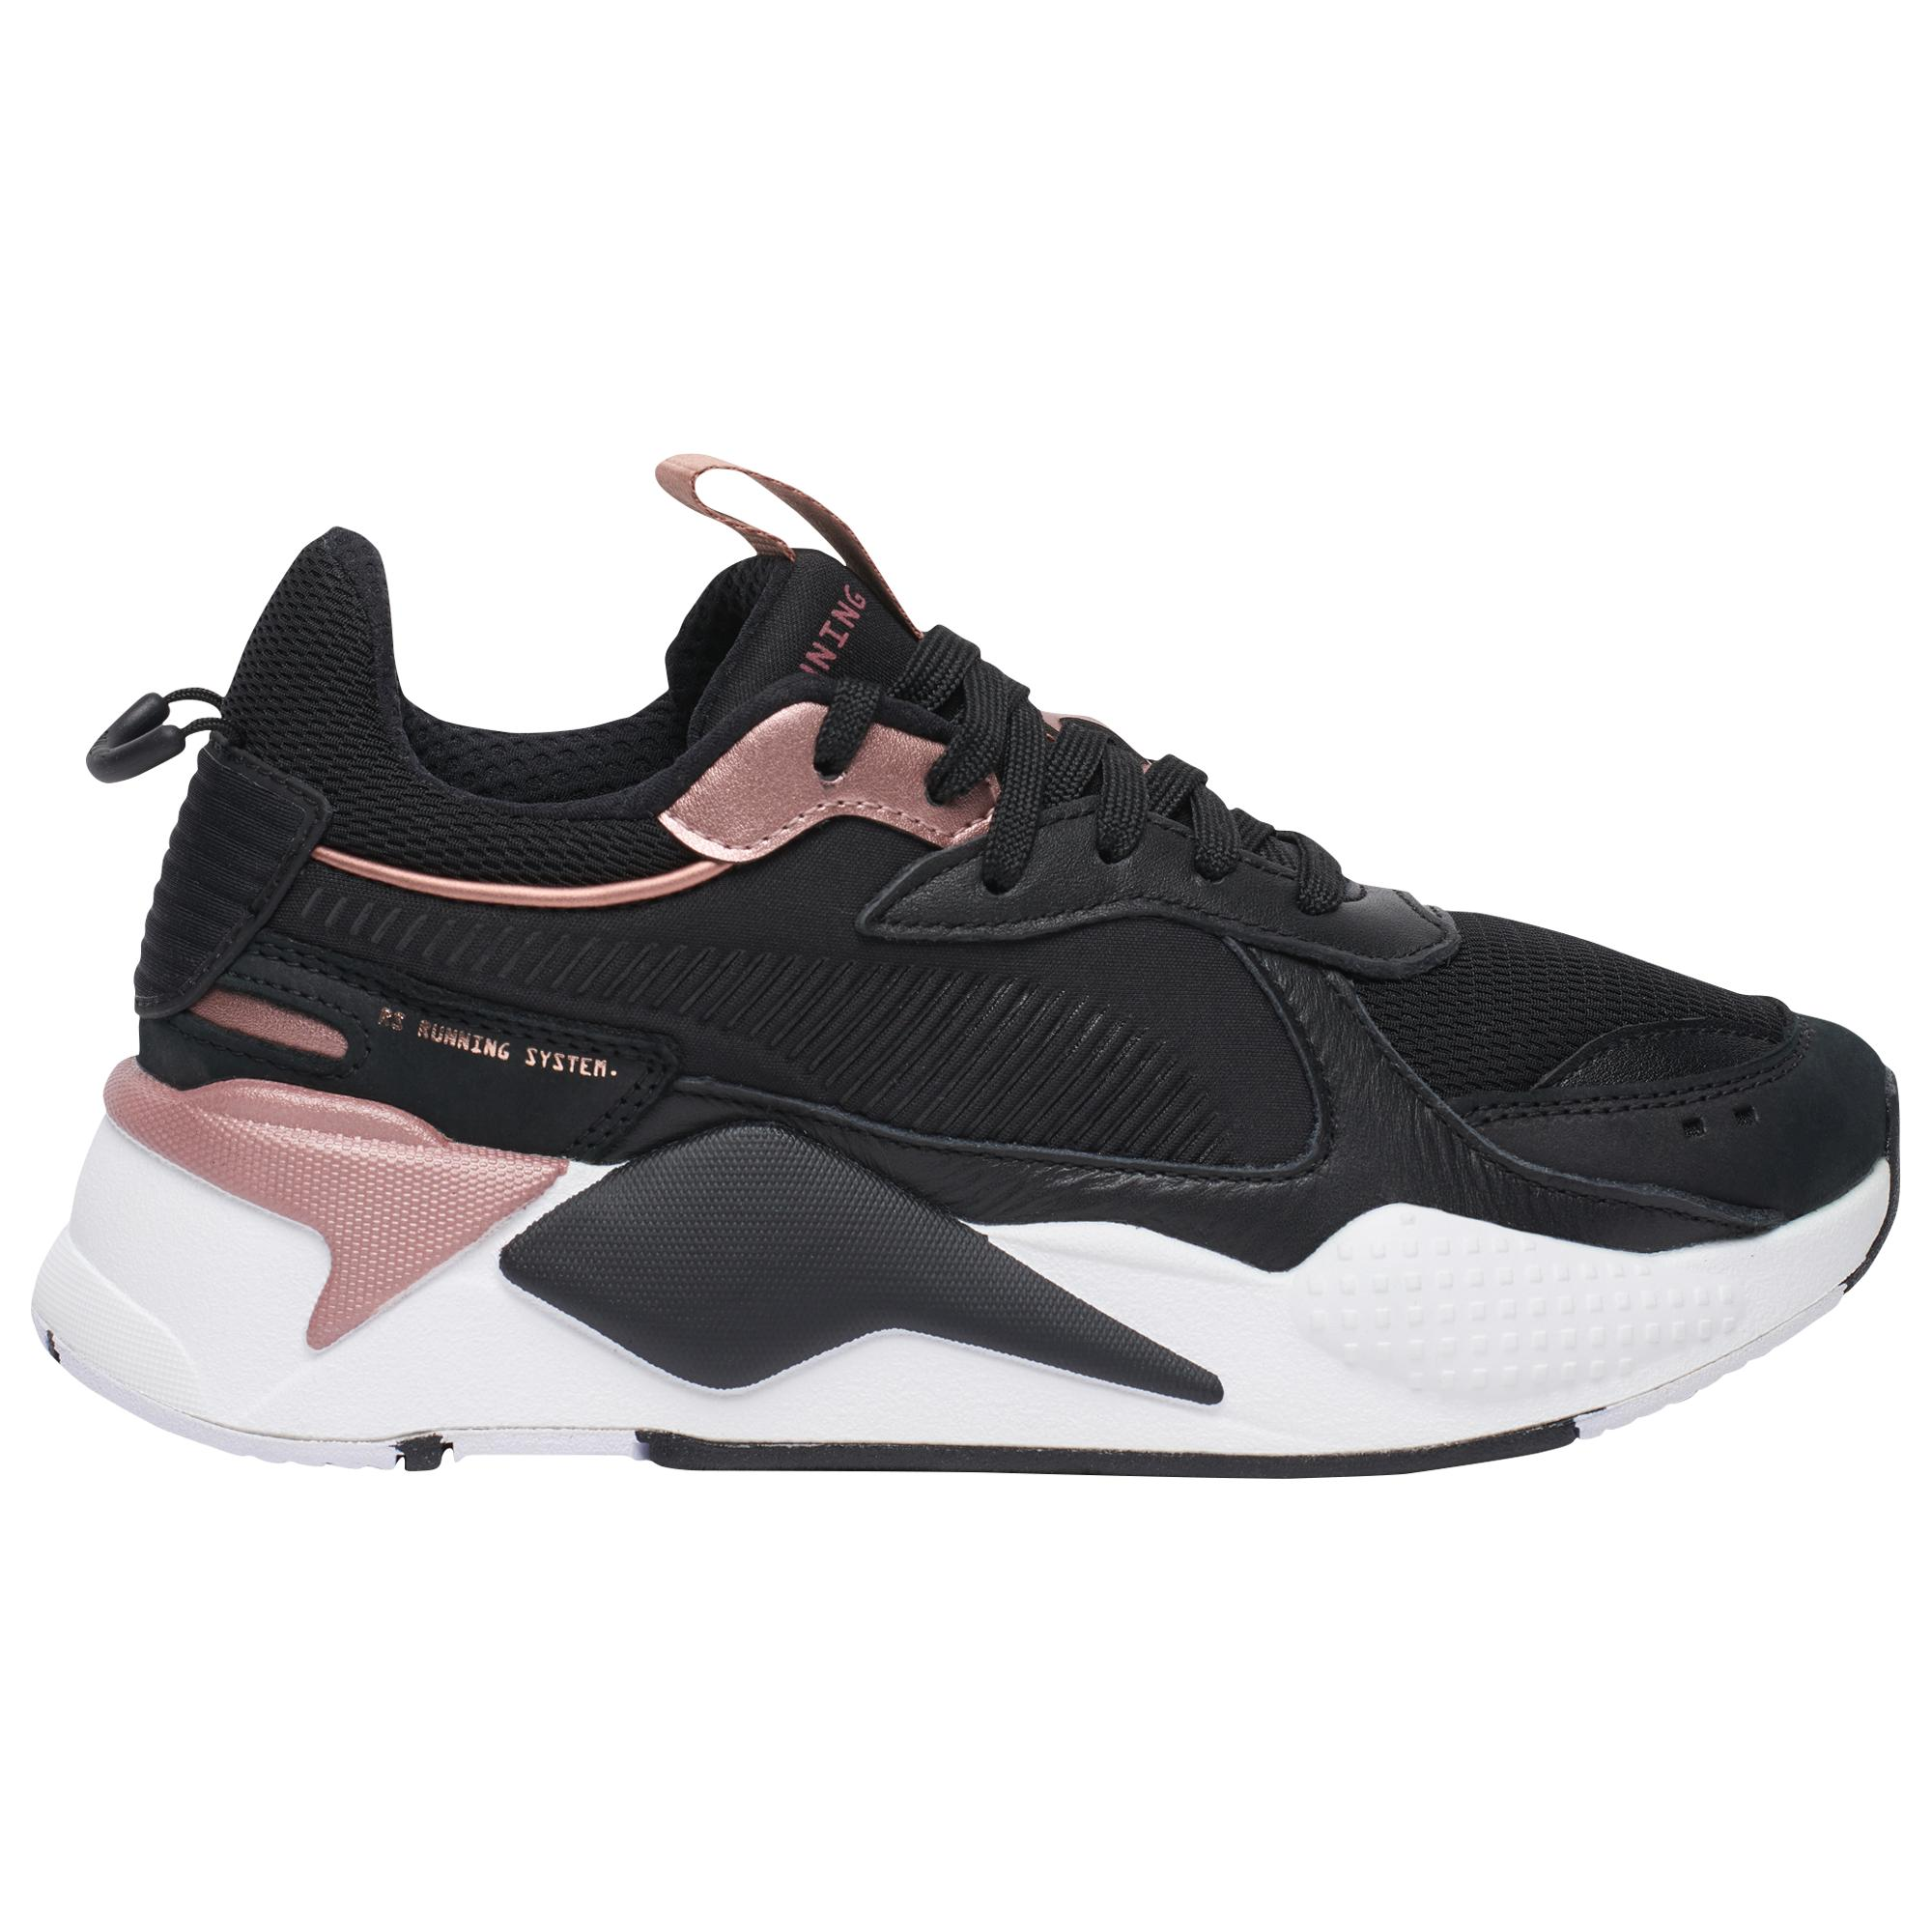 bee67e5d235 Lyst - PUMA Rs-x Trophy Women s Sneakers in Black - Save 1%